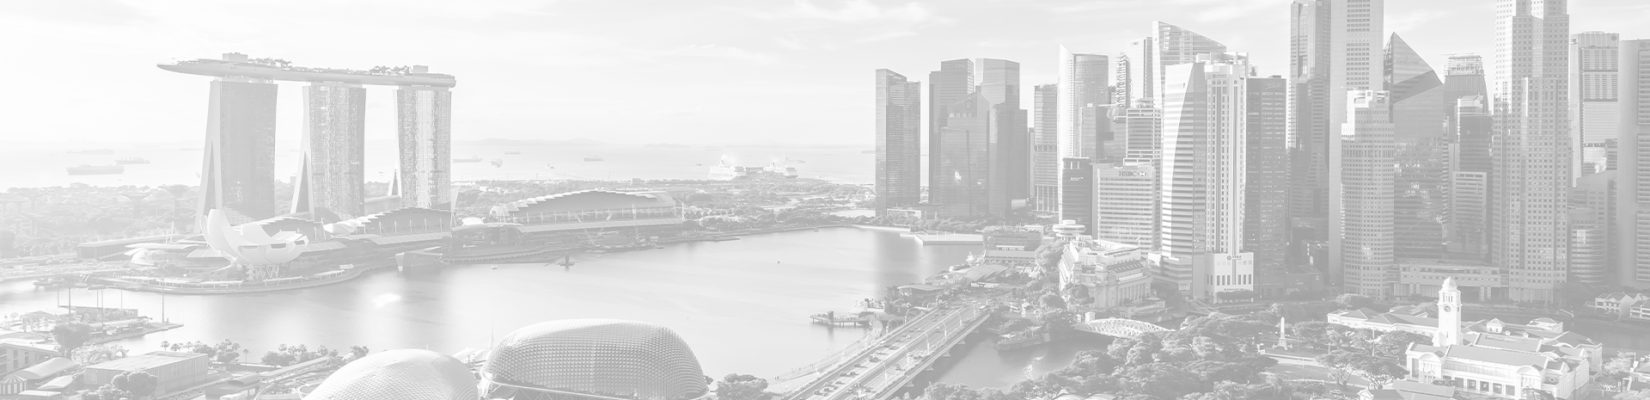 Transparent-Gray Background of Buildings in Singapore - BluJay Customs Management